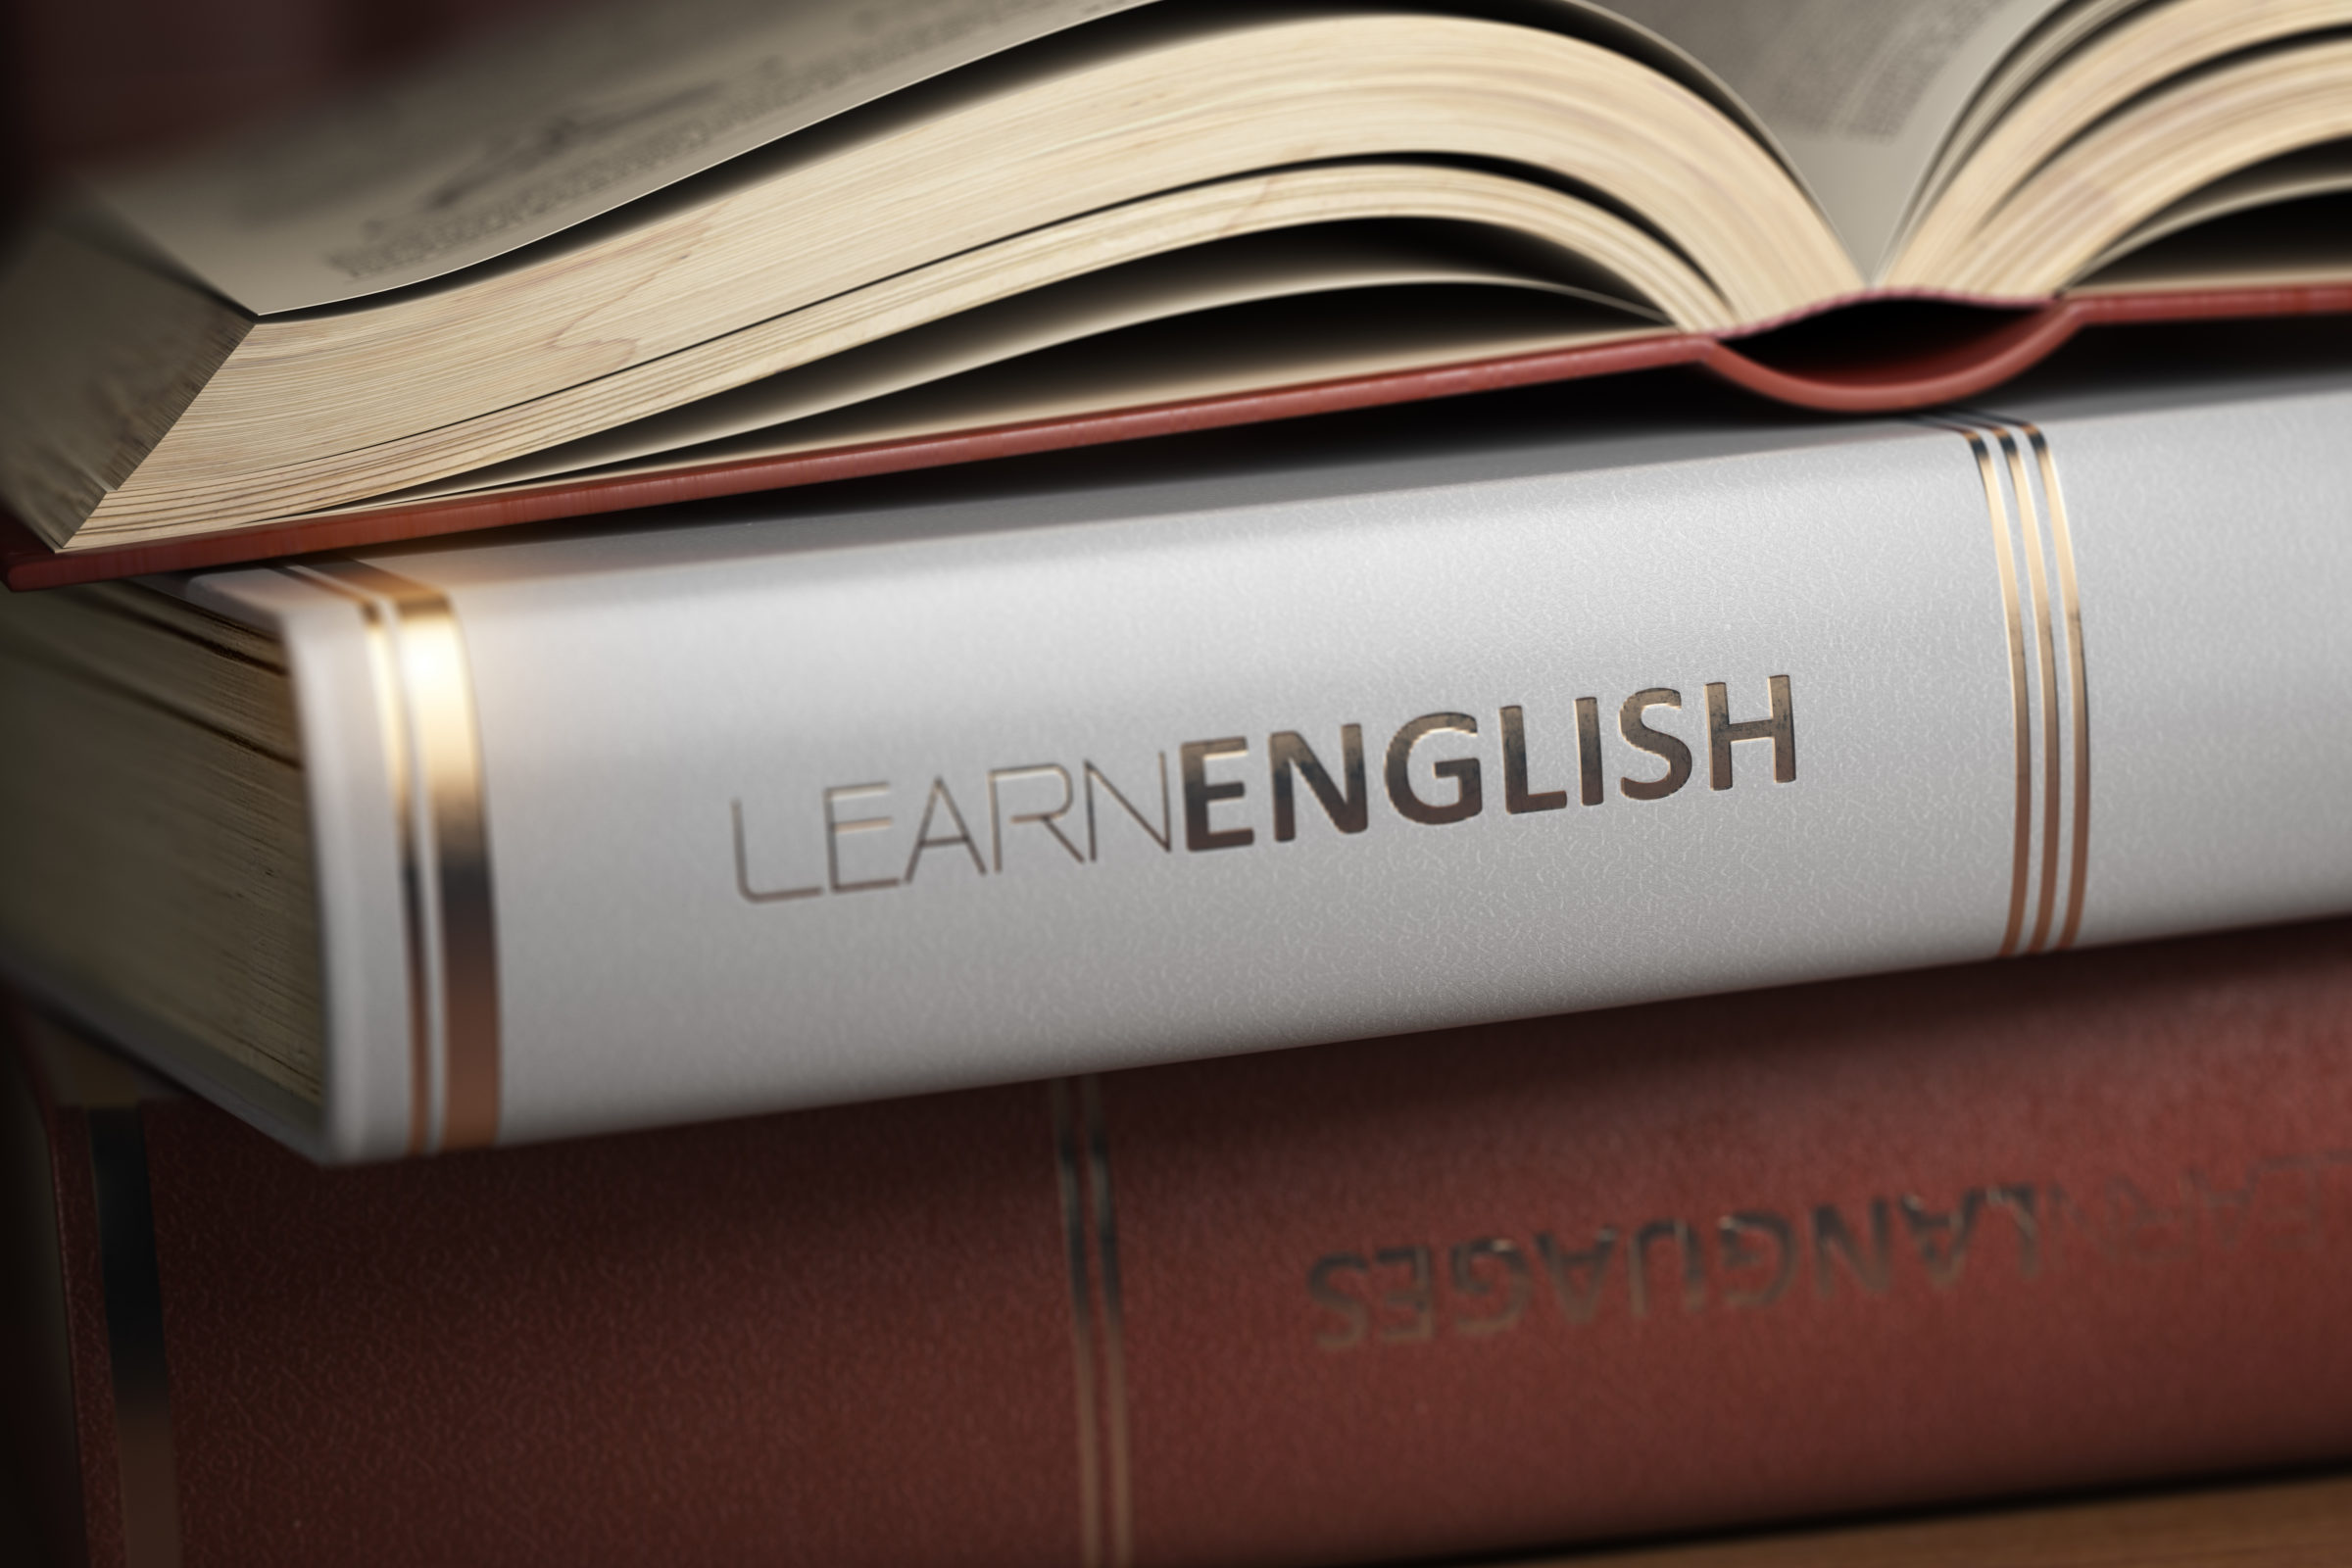 learn english books and textbooks for english stud GL46ECR